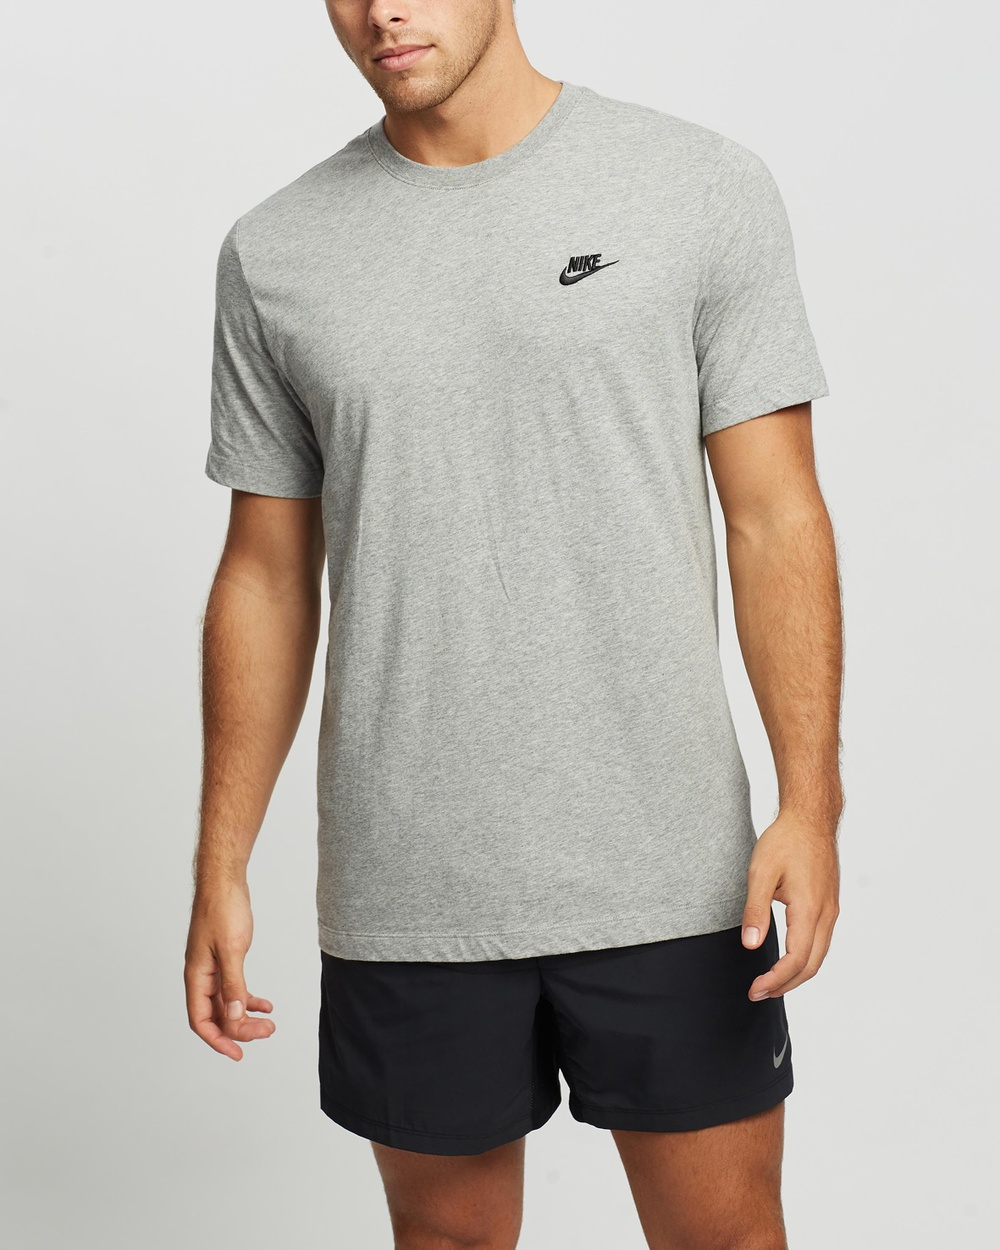 Nike - Sportswear Club Tee - Short Sleeve T-Shirts (Dark Grey Heather & Black) Sportswear Club Tee